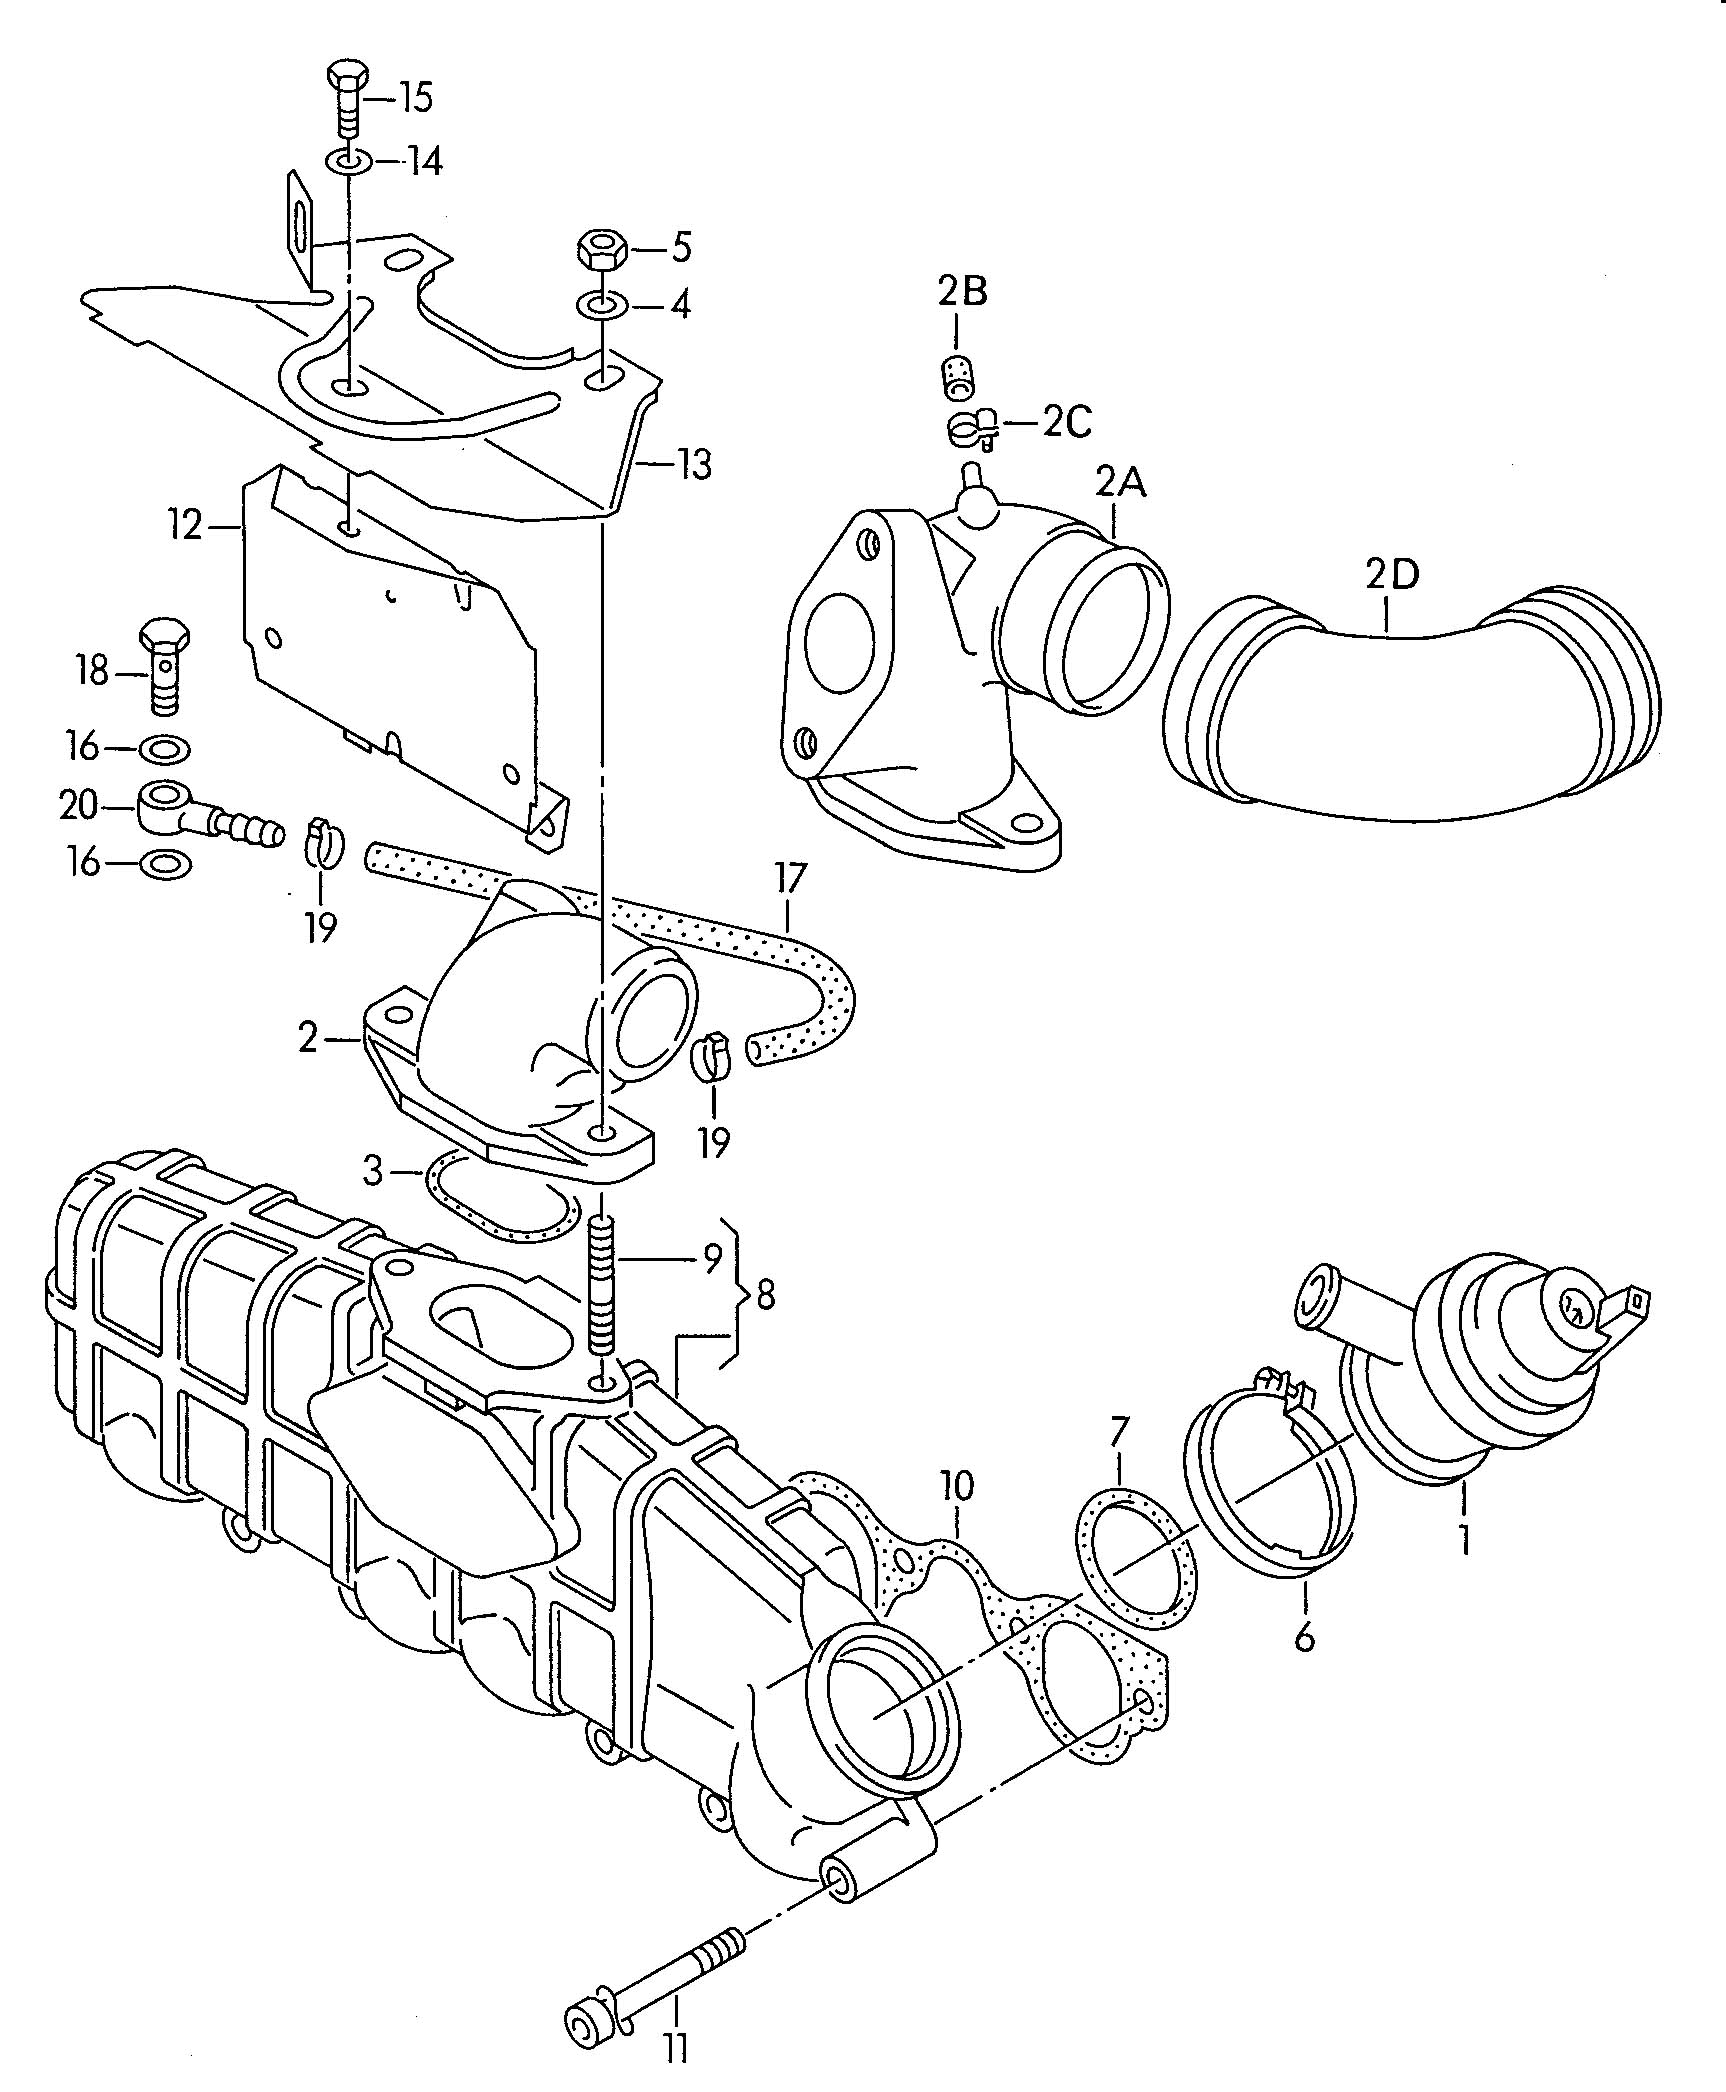 Torrentinotn weebly moreover engine wiring harness diagram together with view of motorcycle engine cutaway also index